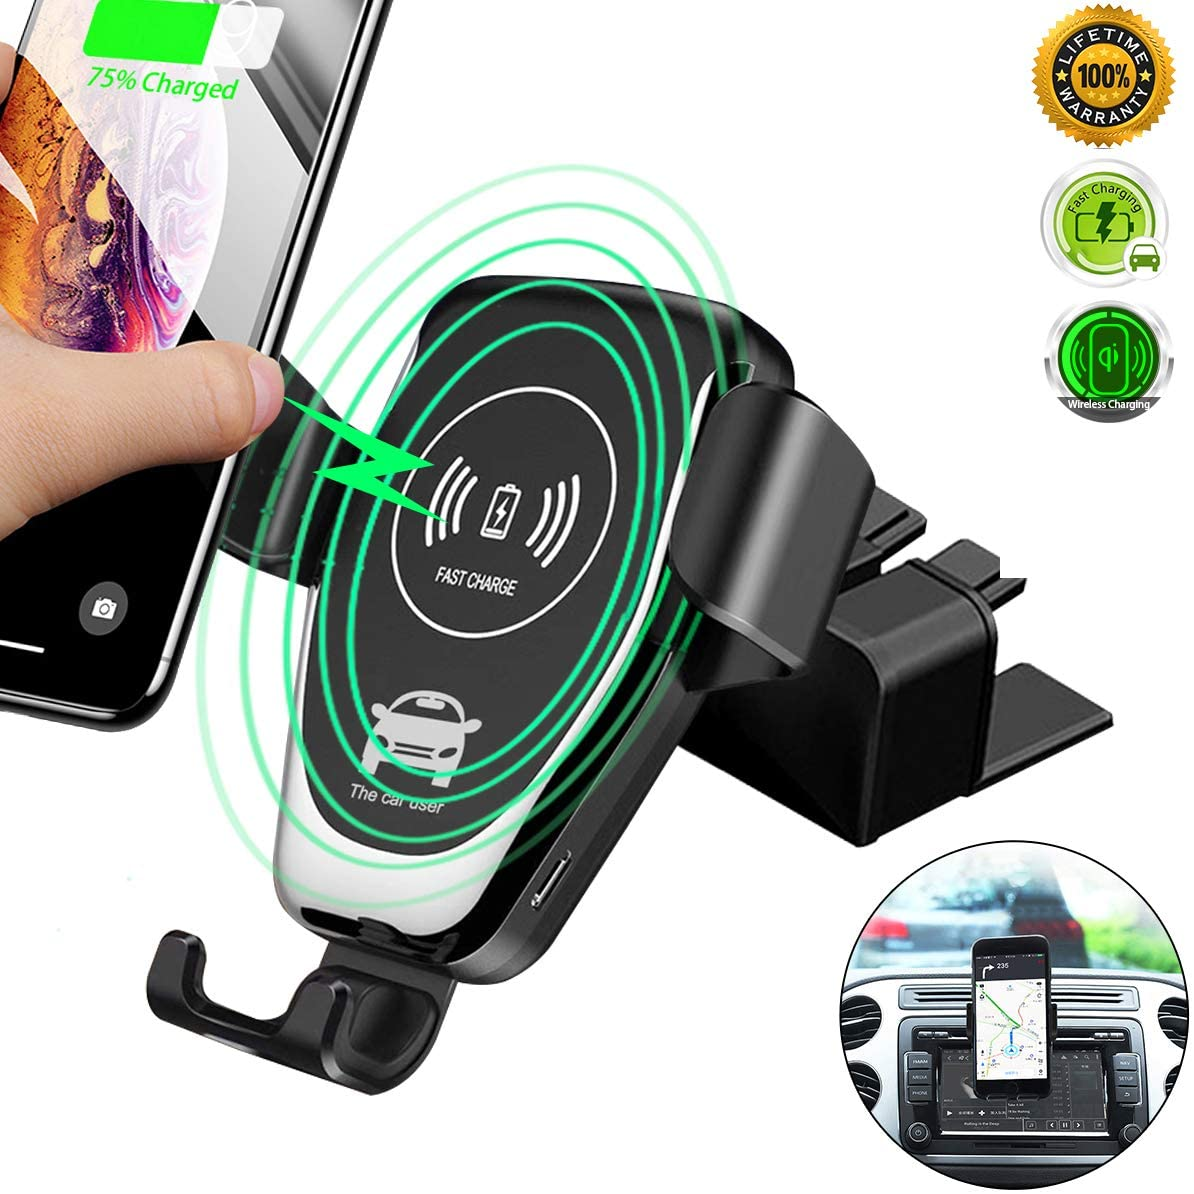 CD Slot Wireless Car Charger,10w Fast Charge CD Mount Phone Holder Car Mount,[All Qi-Enable Devices][Gravity Sensor] Phone Mount for Samsung Galaxy S10/S10 Plus Note9/S9/S8 iPhone 11 Pro/X/XR/XS Max